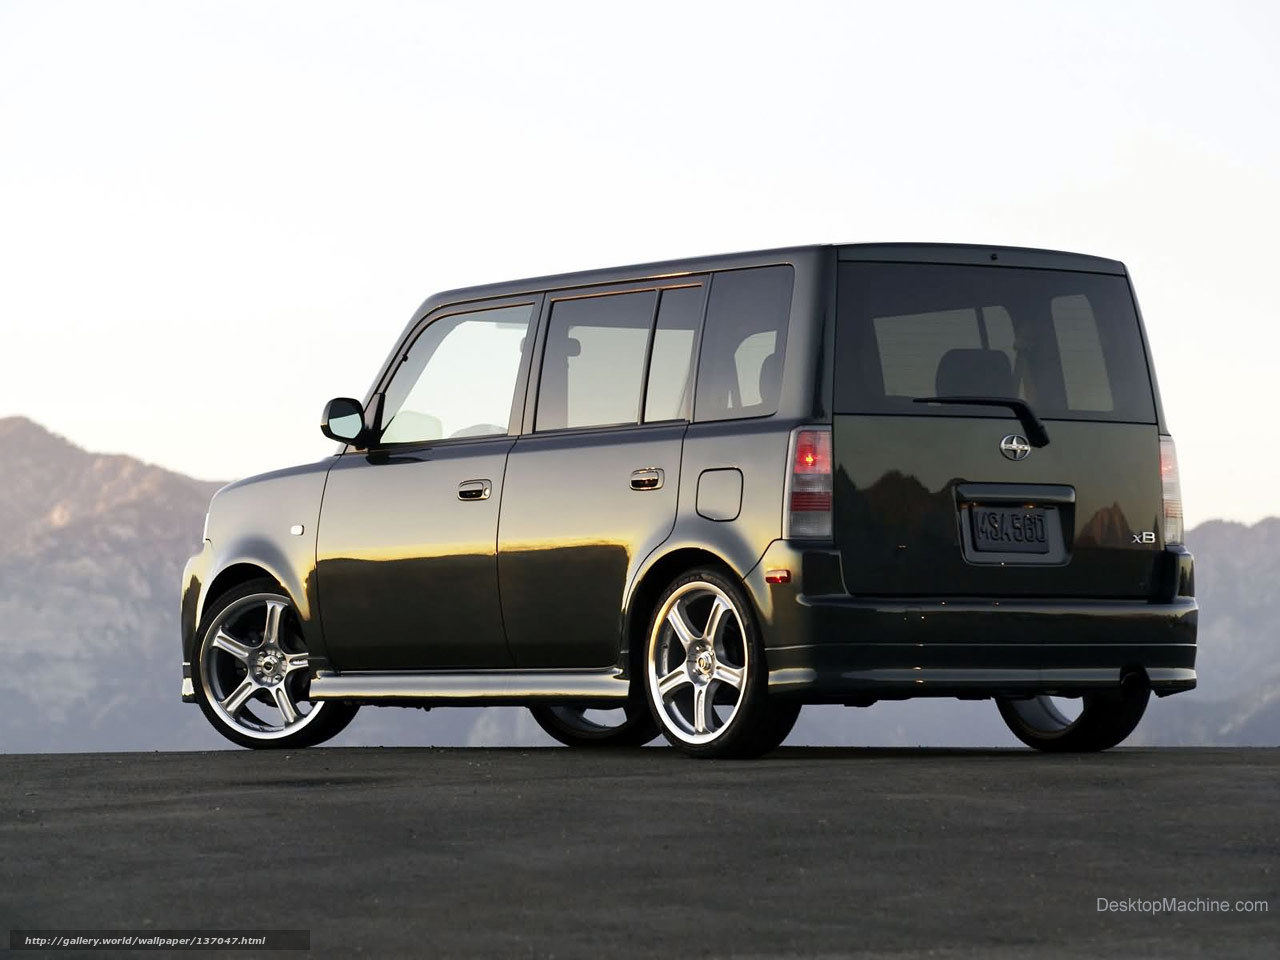 Download Wallpaper Scion XB Car Machinery Free Desktop